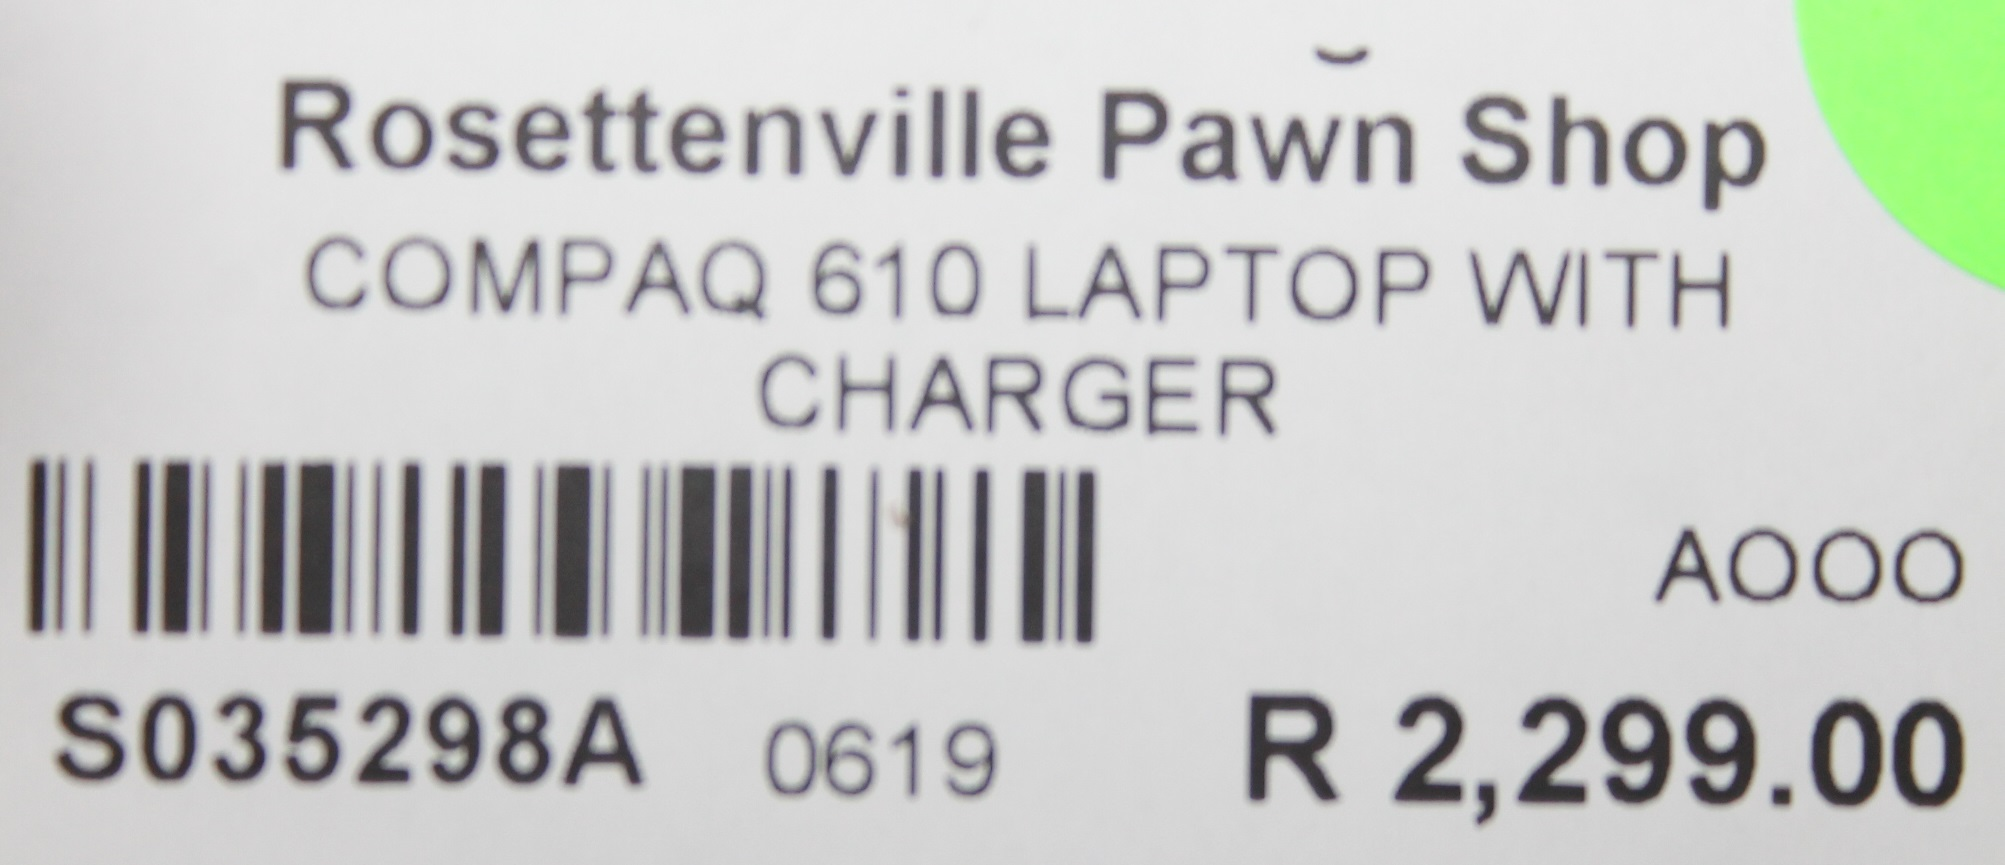 S035298A Compaq 610 laptop with charger #Rosettenvillepawnshop